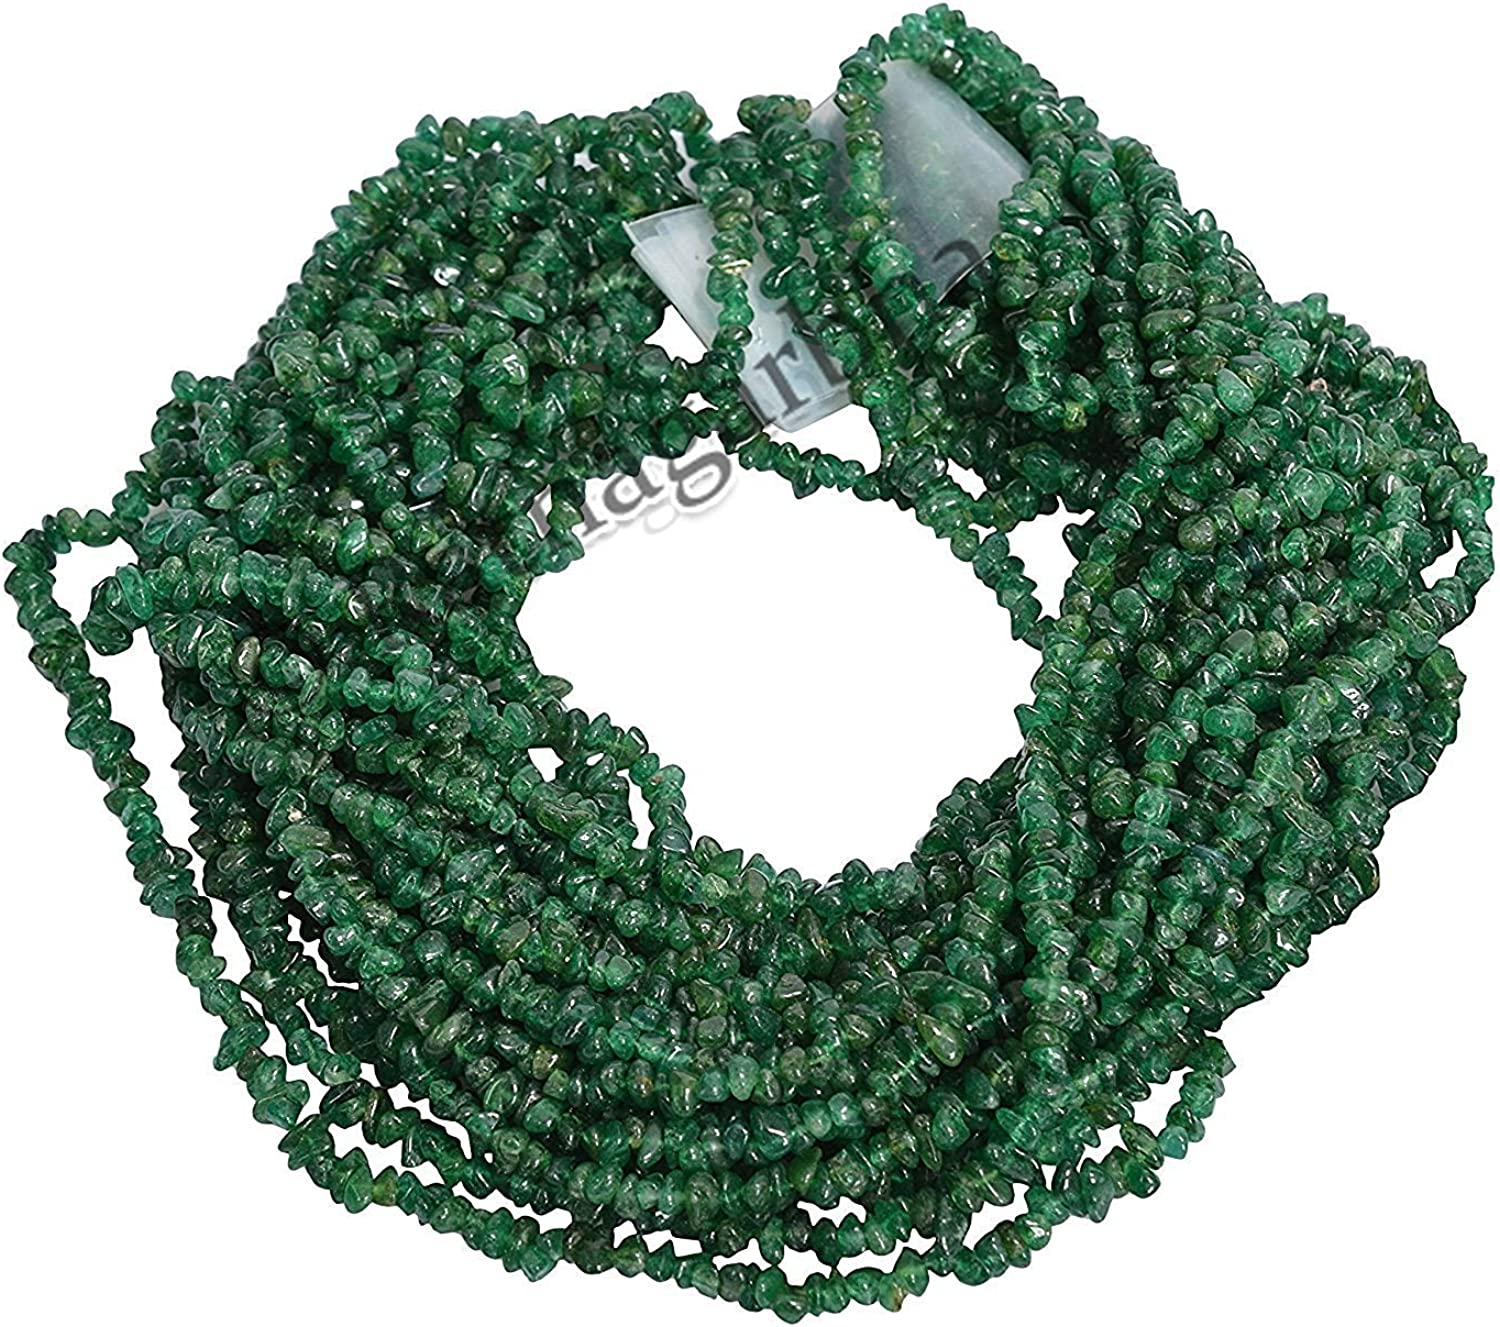 Wholesale Price Ratnagarbha Natural Green Aventurine Nuggets Chips Loose Gemstone Beads Prepared Exclusively 34 inch Length Emerald Green Color Jewelry Making